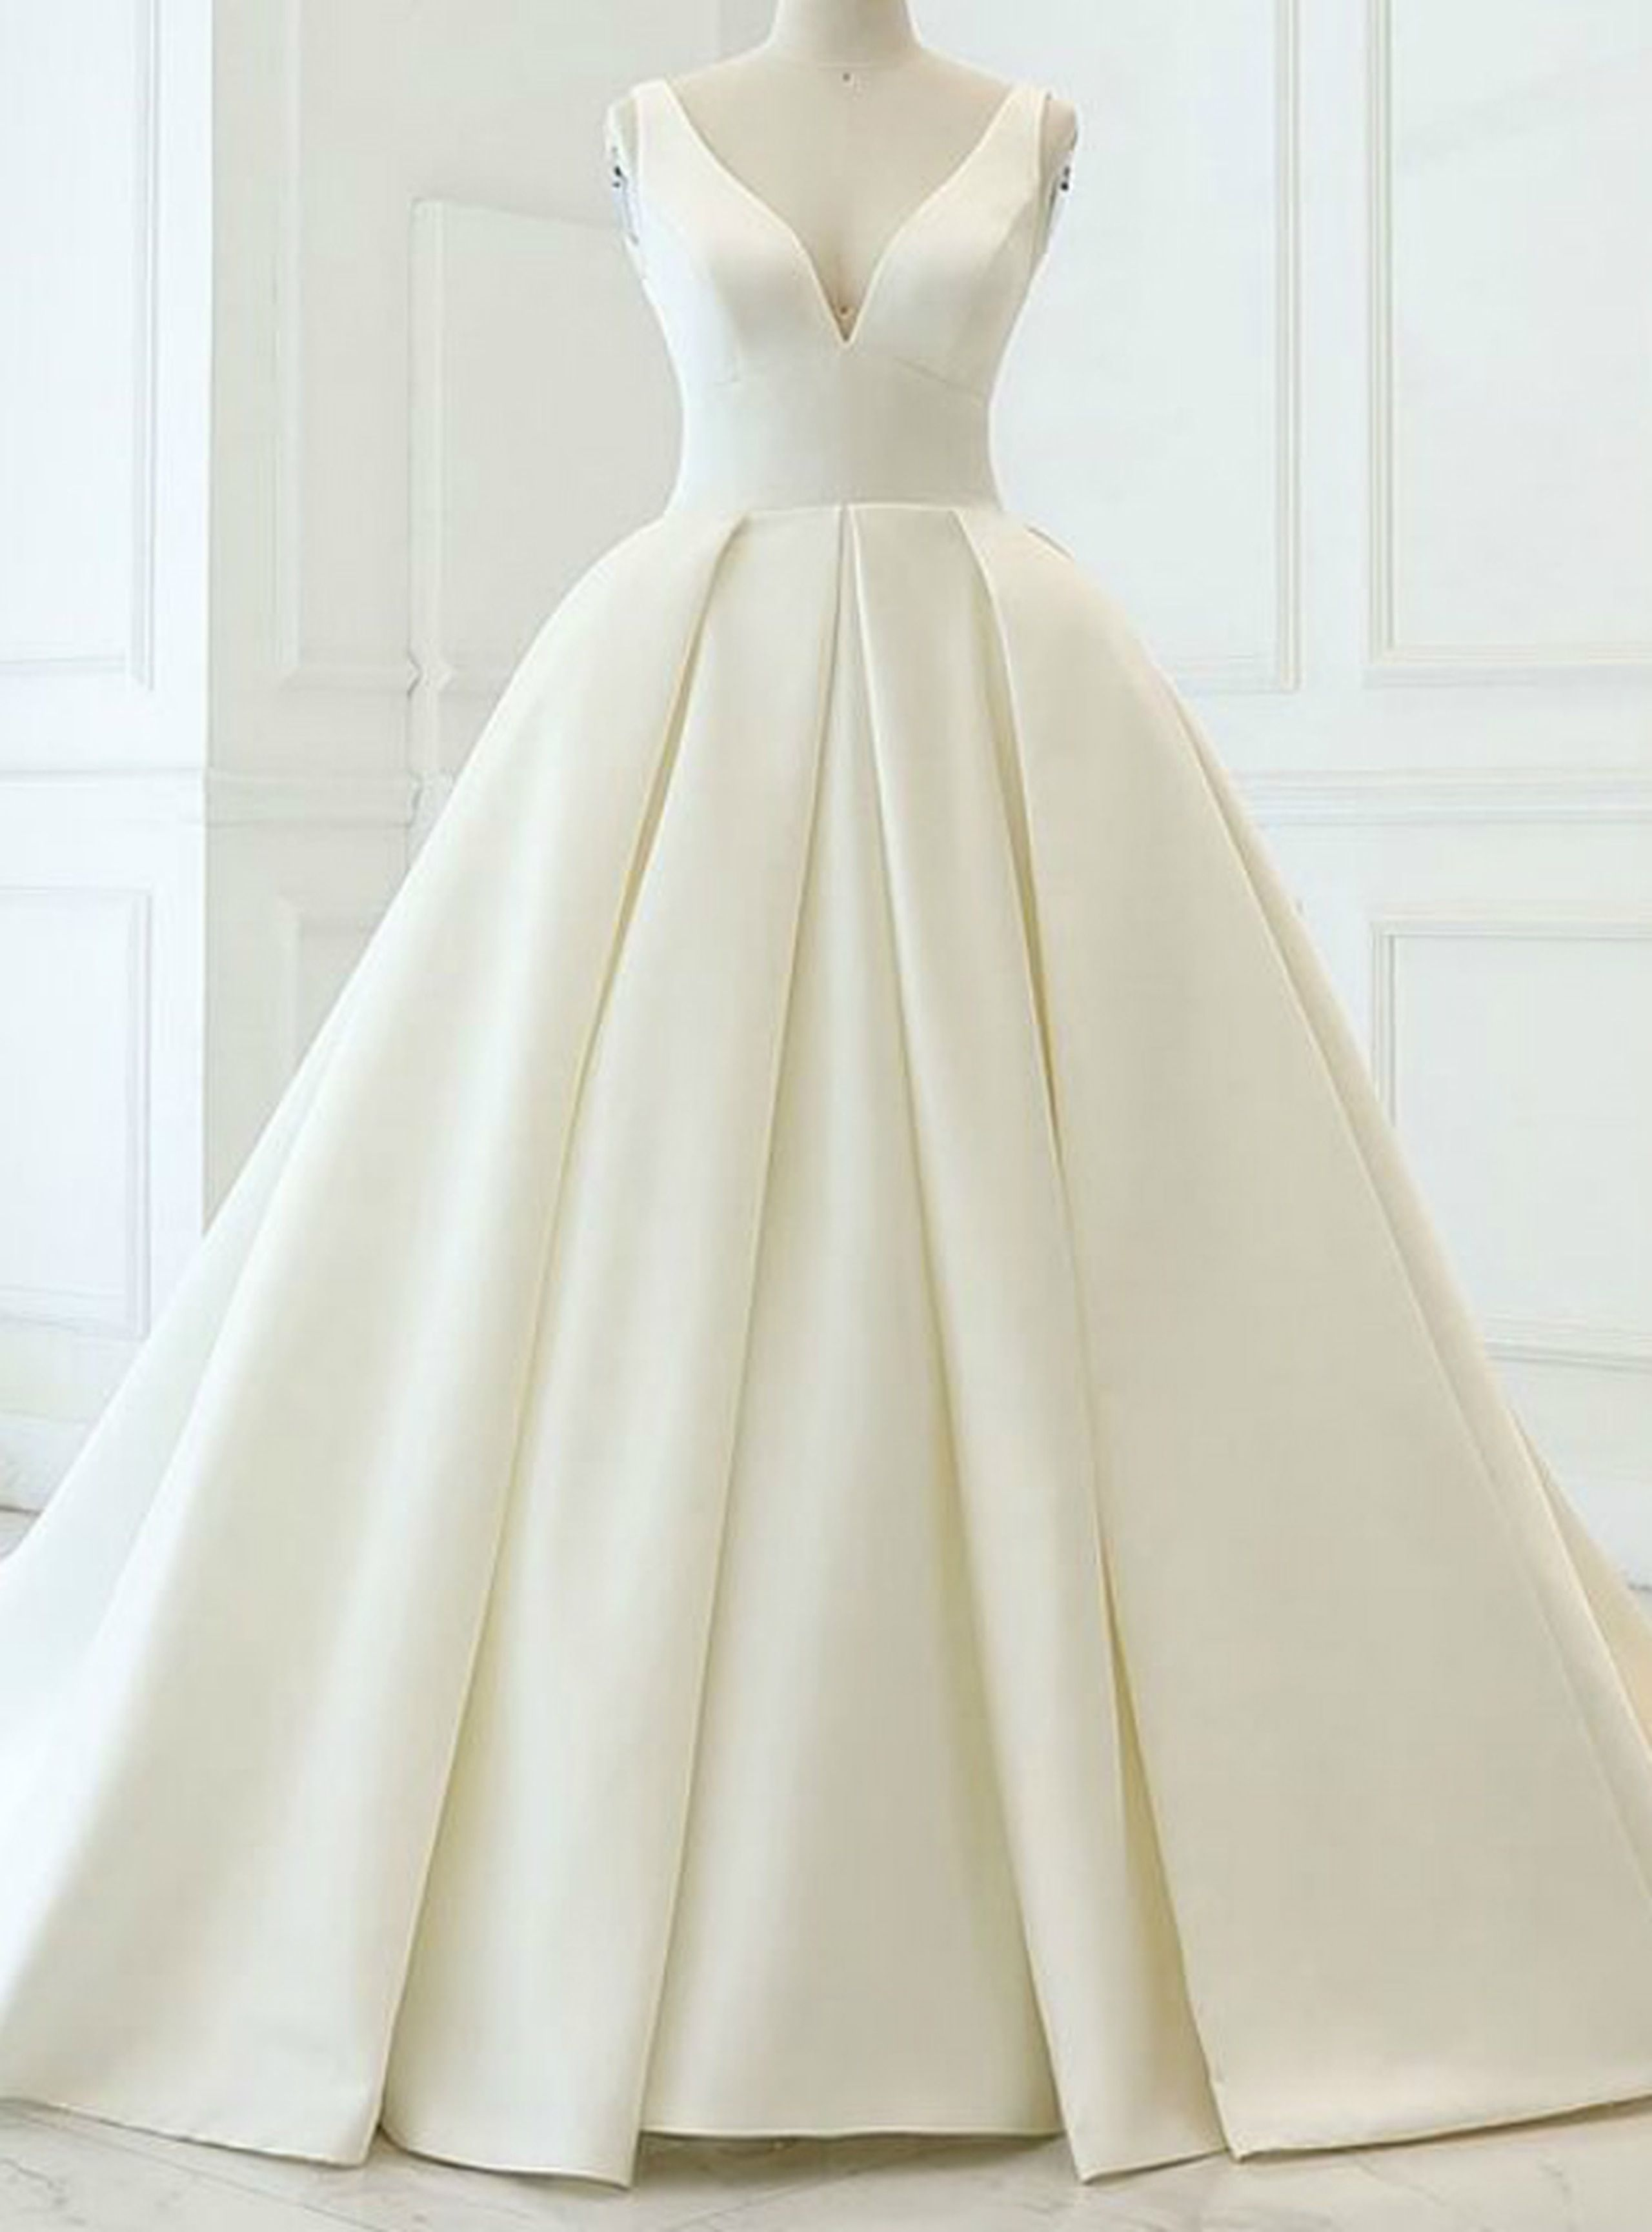 Charming Beige White Ball Gown Satin V-neck Backless Wedding Dress